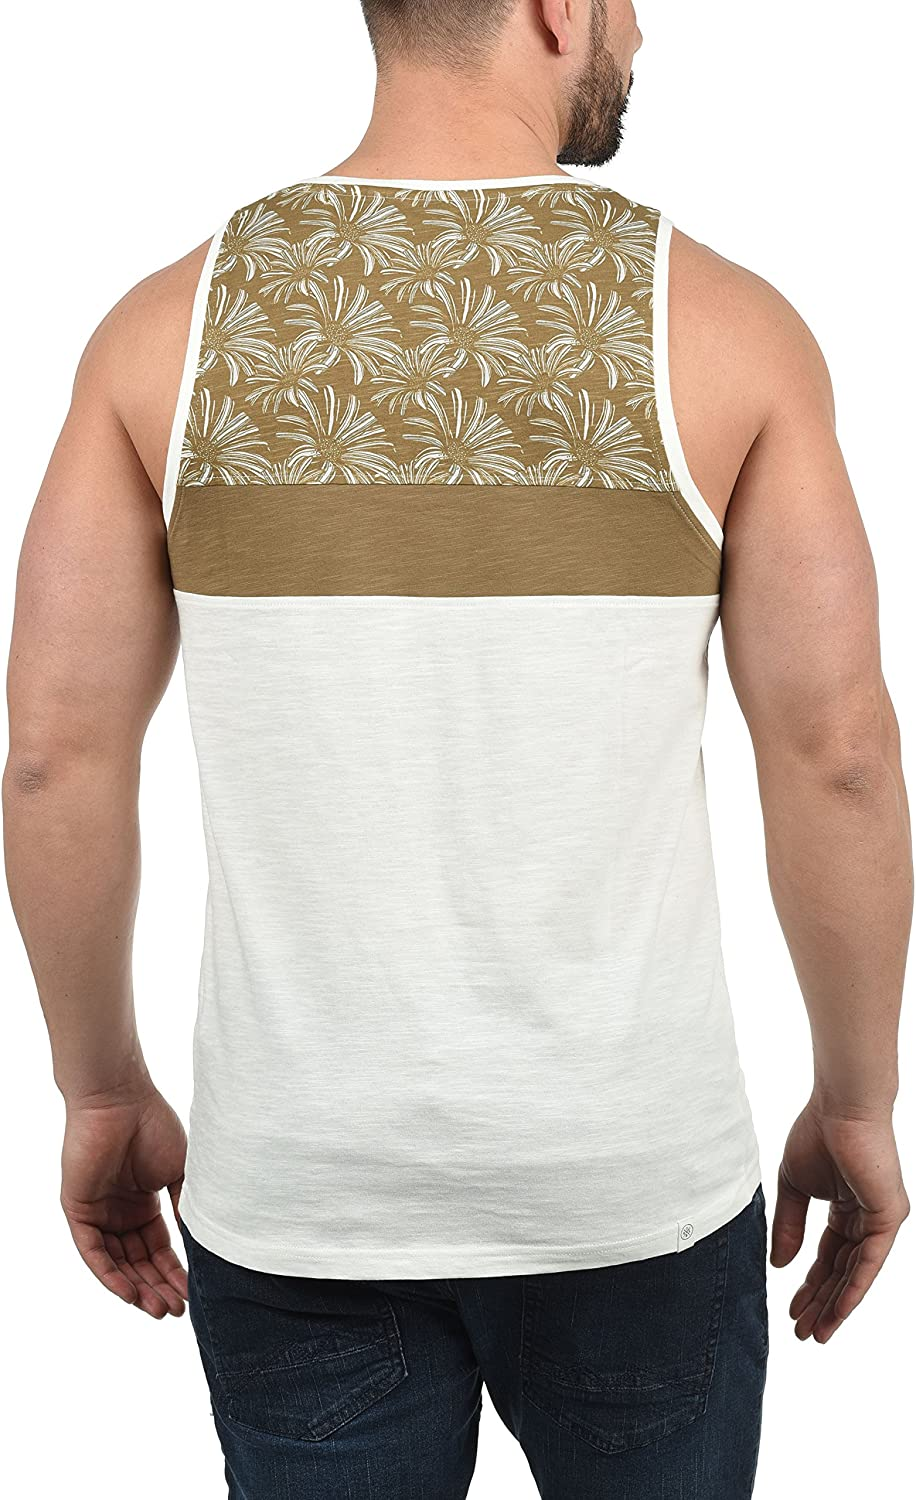 Solid Flo Mens Sleeveless Vest Tank Top with Chest Pocket